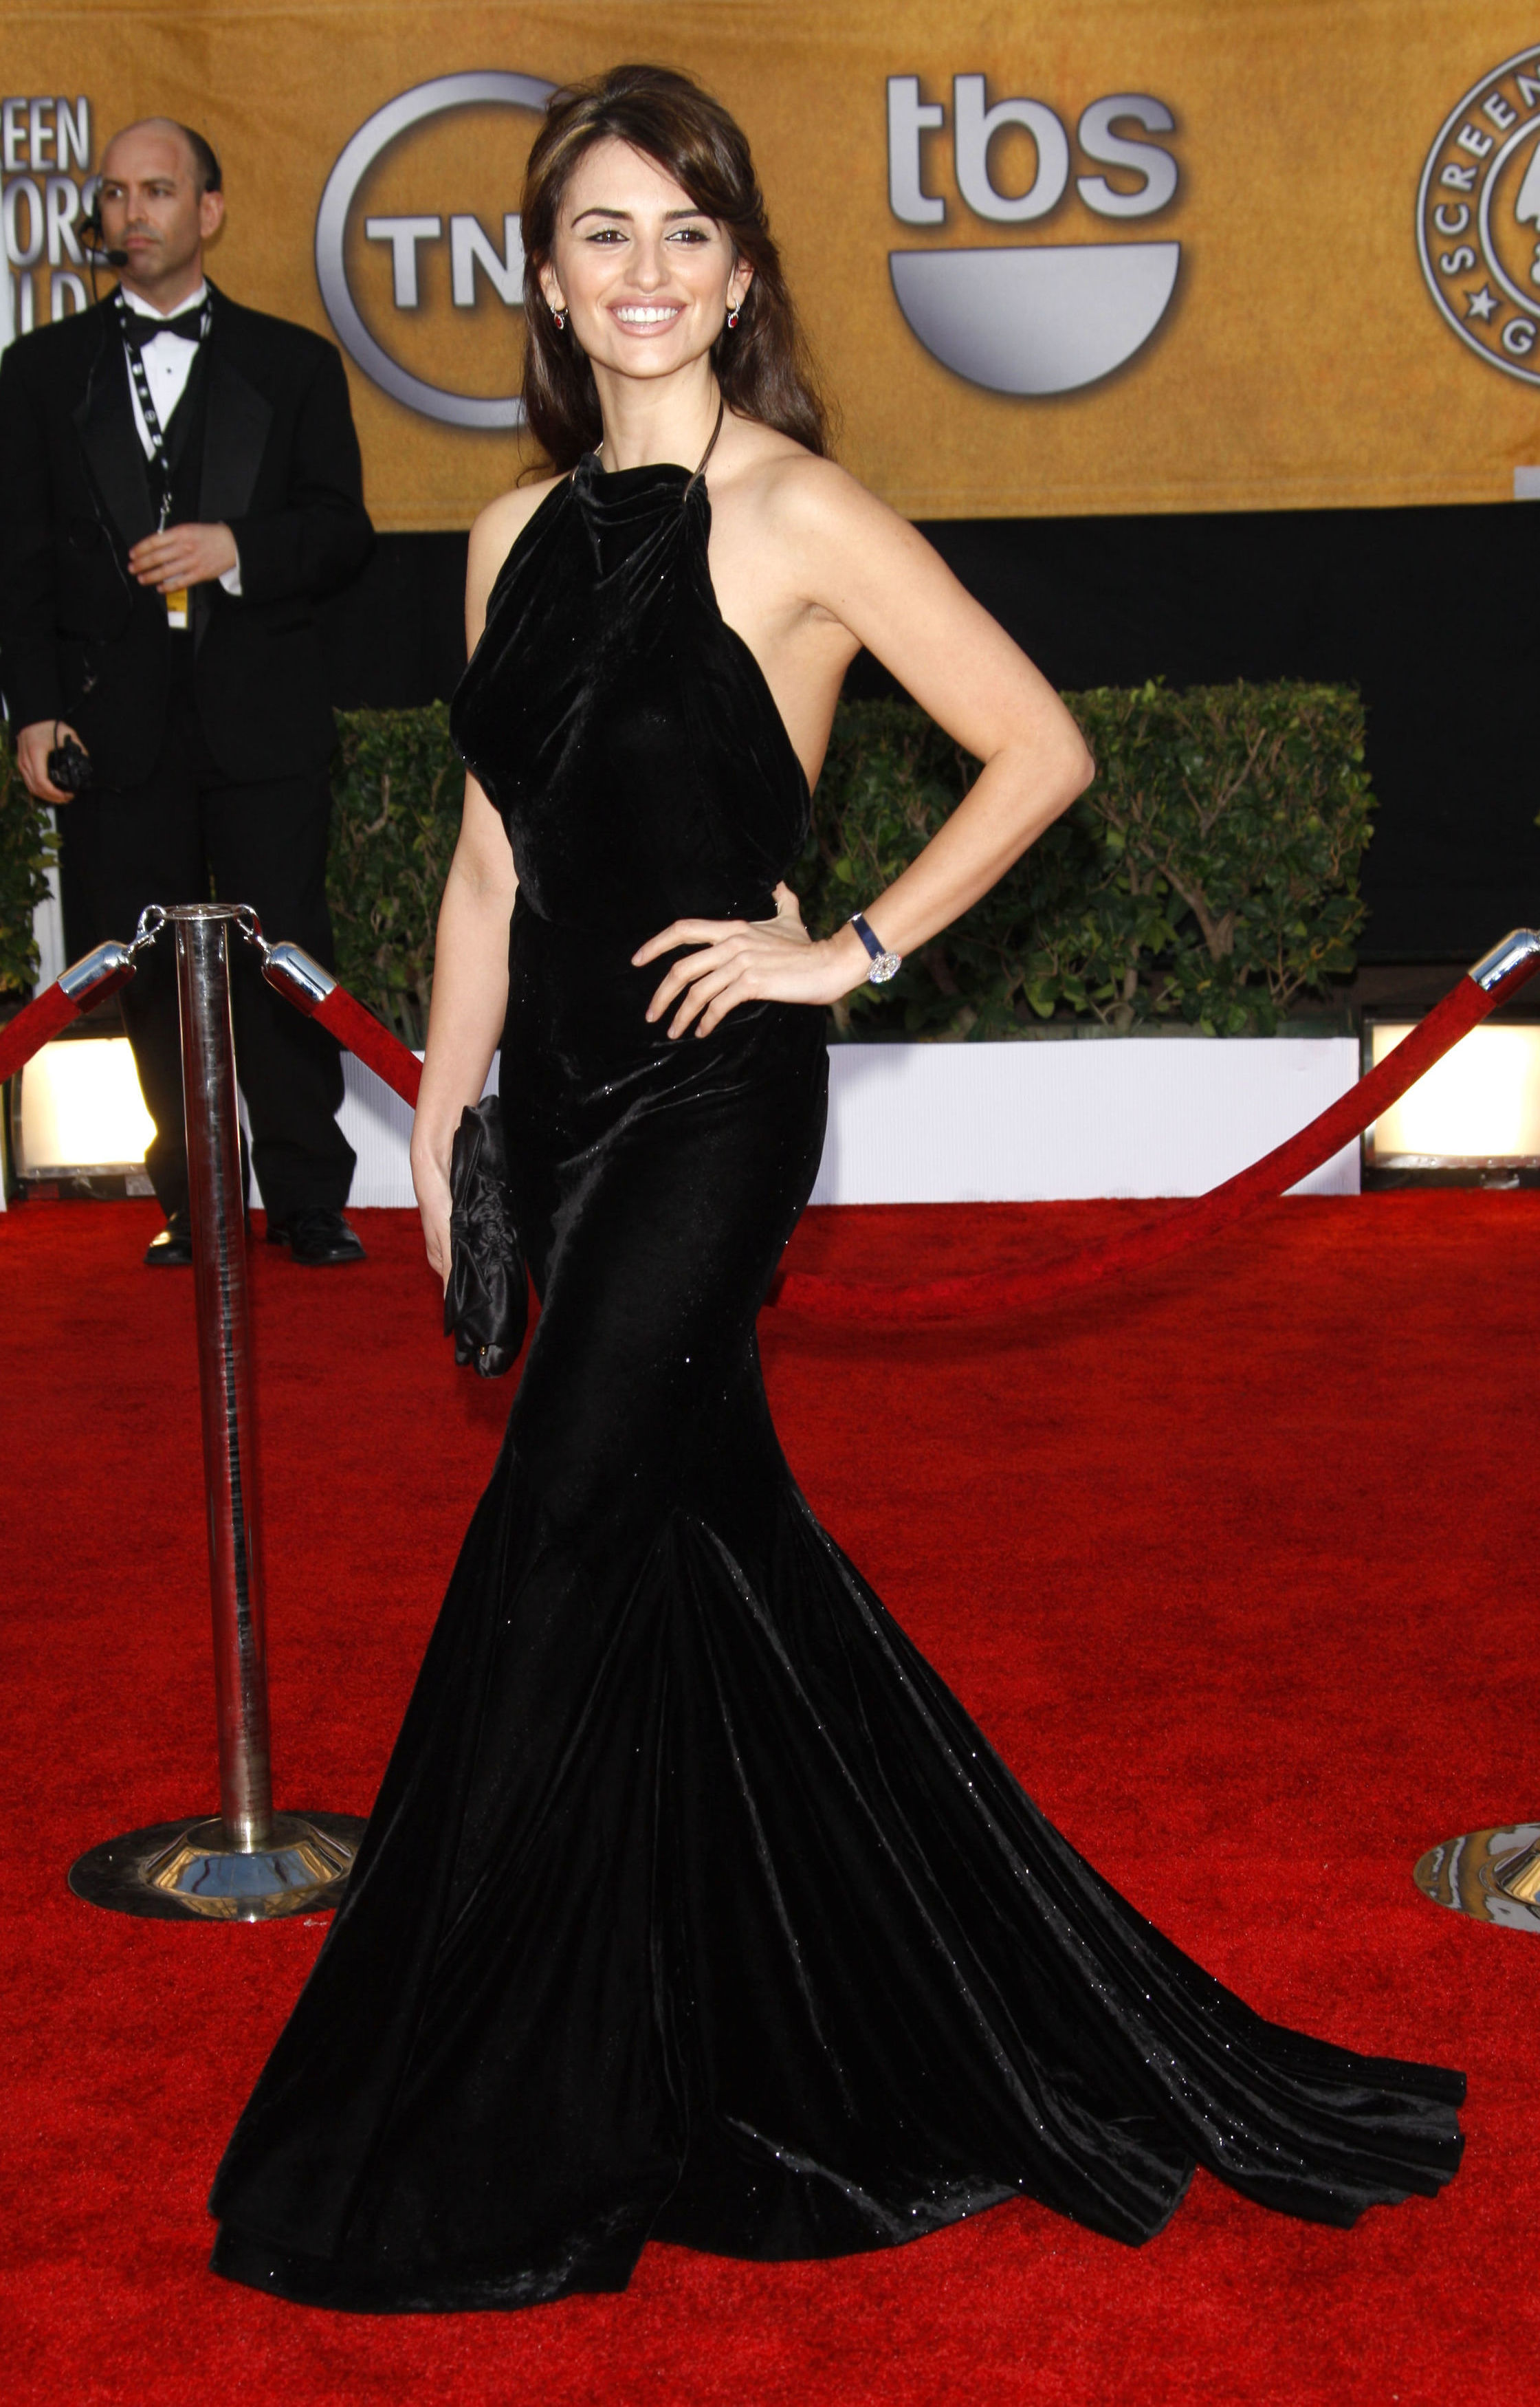 Penelope Cruz attends the 15th Annual Screen Actors Guild Awards in Los Angeles on Jan. 25, 2009.